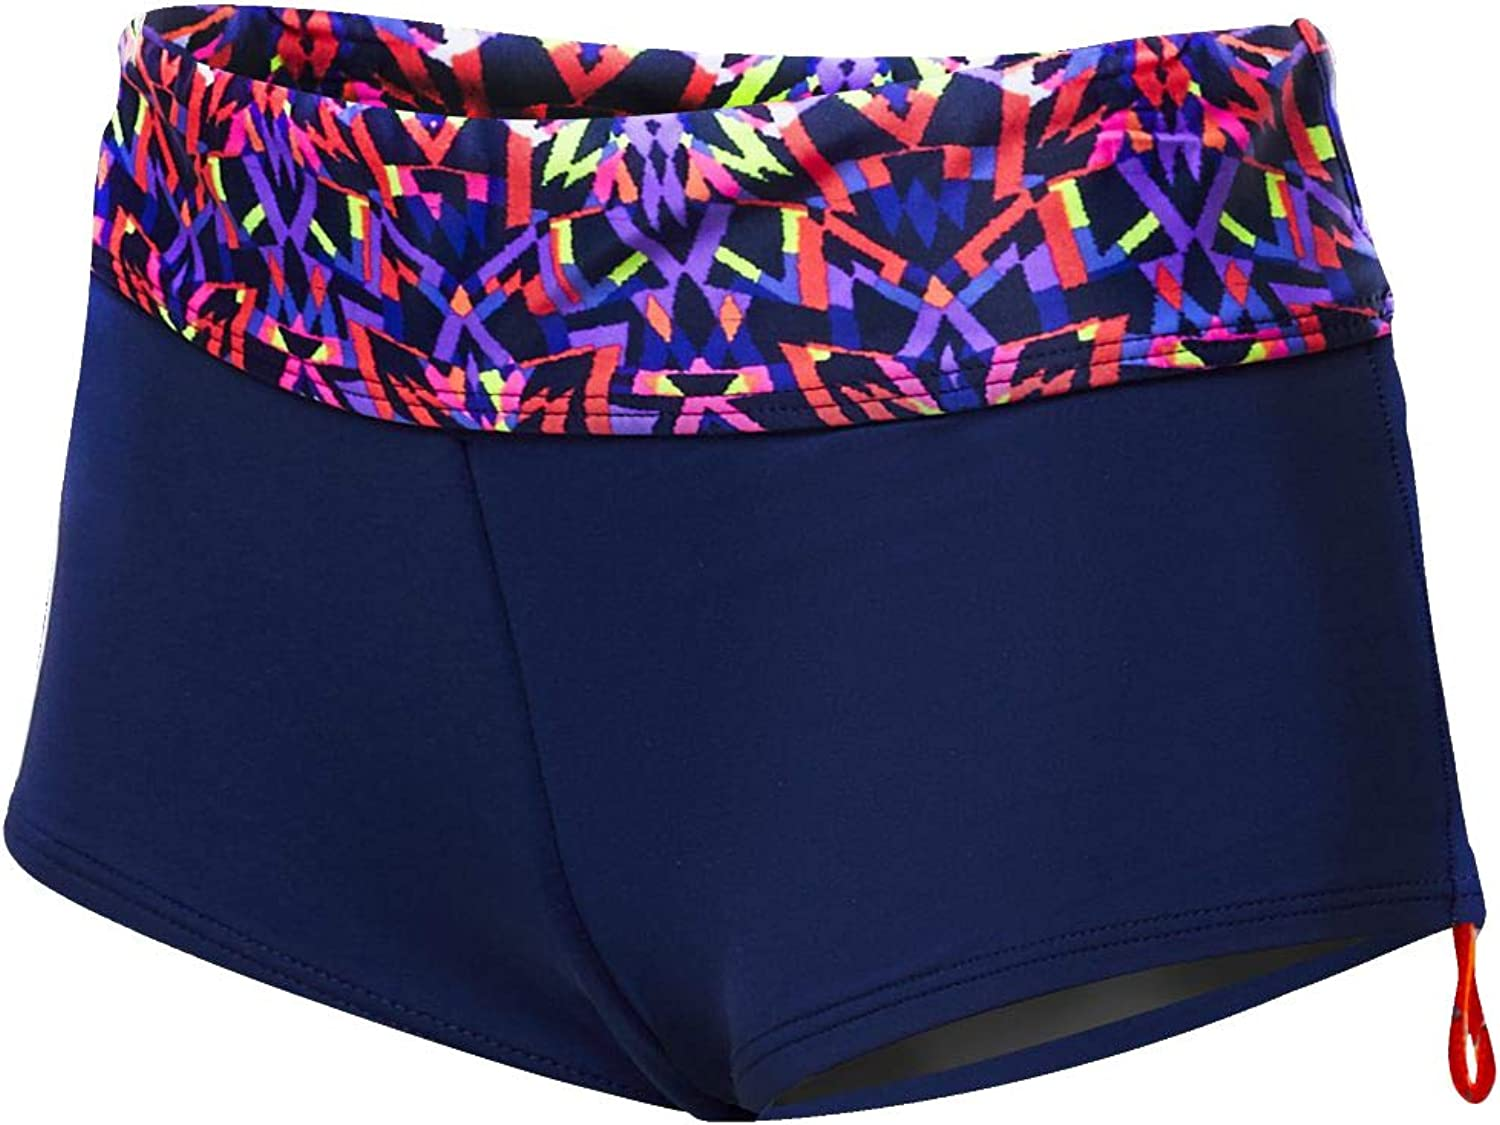 TYR Della Boyshort-Carnivale, Navy Multi, Small